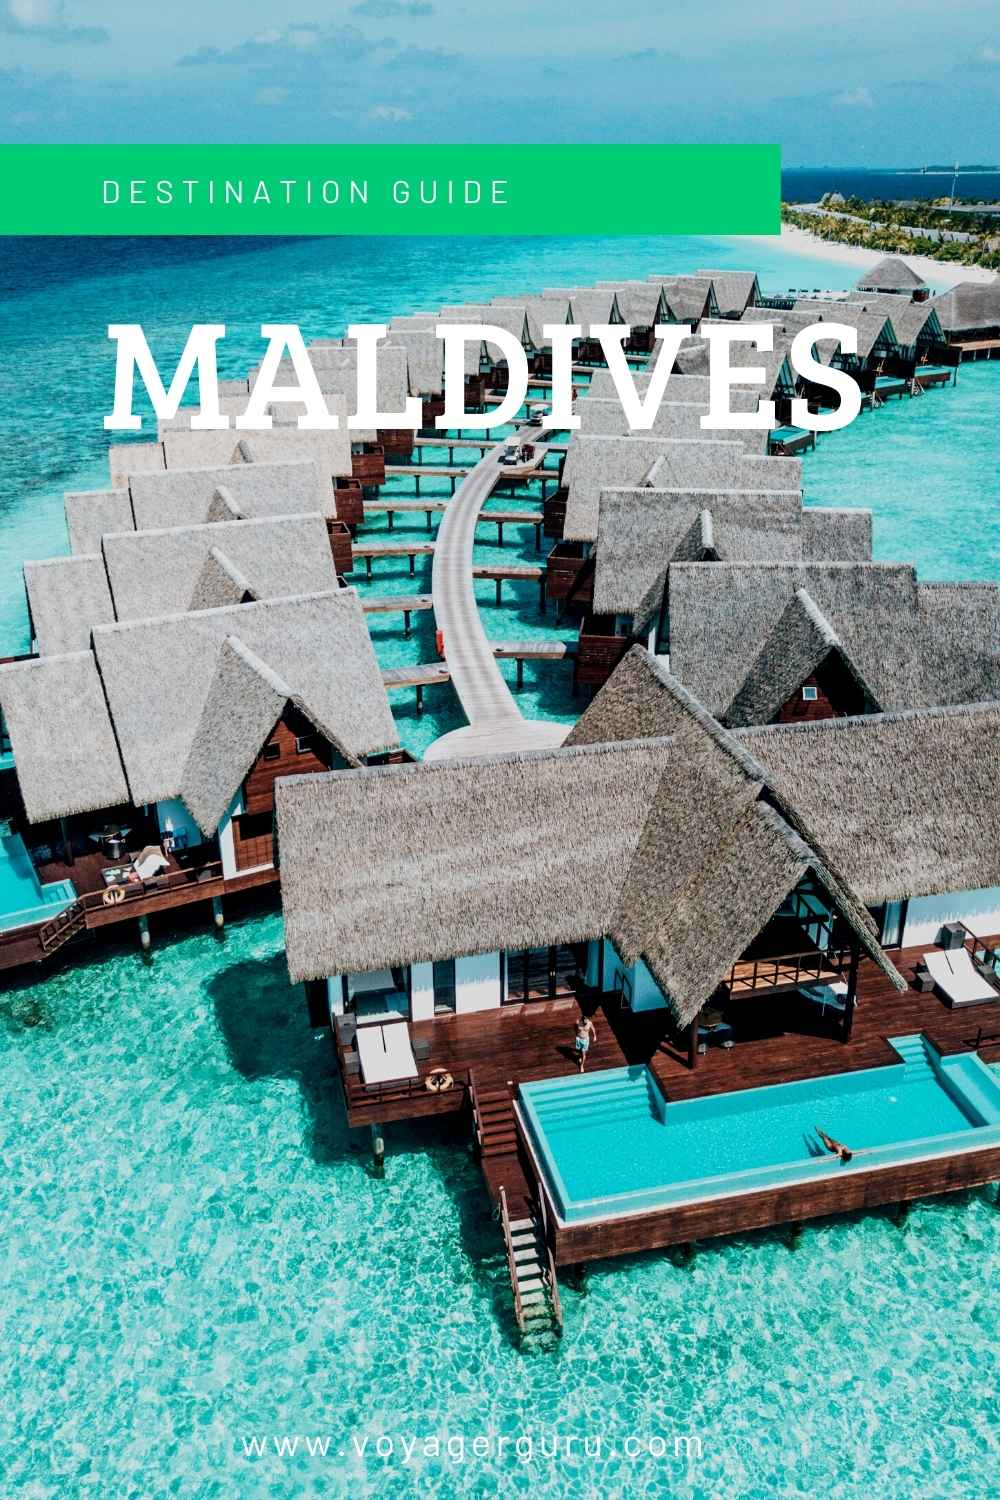 maldives destination guide pin 2